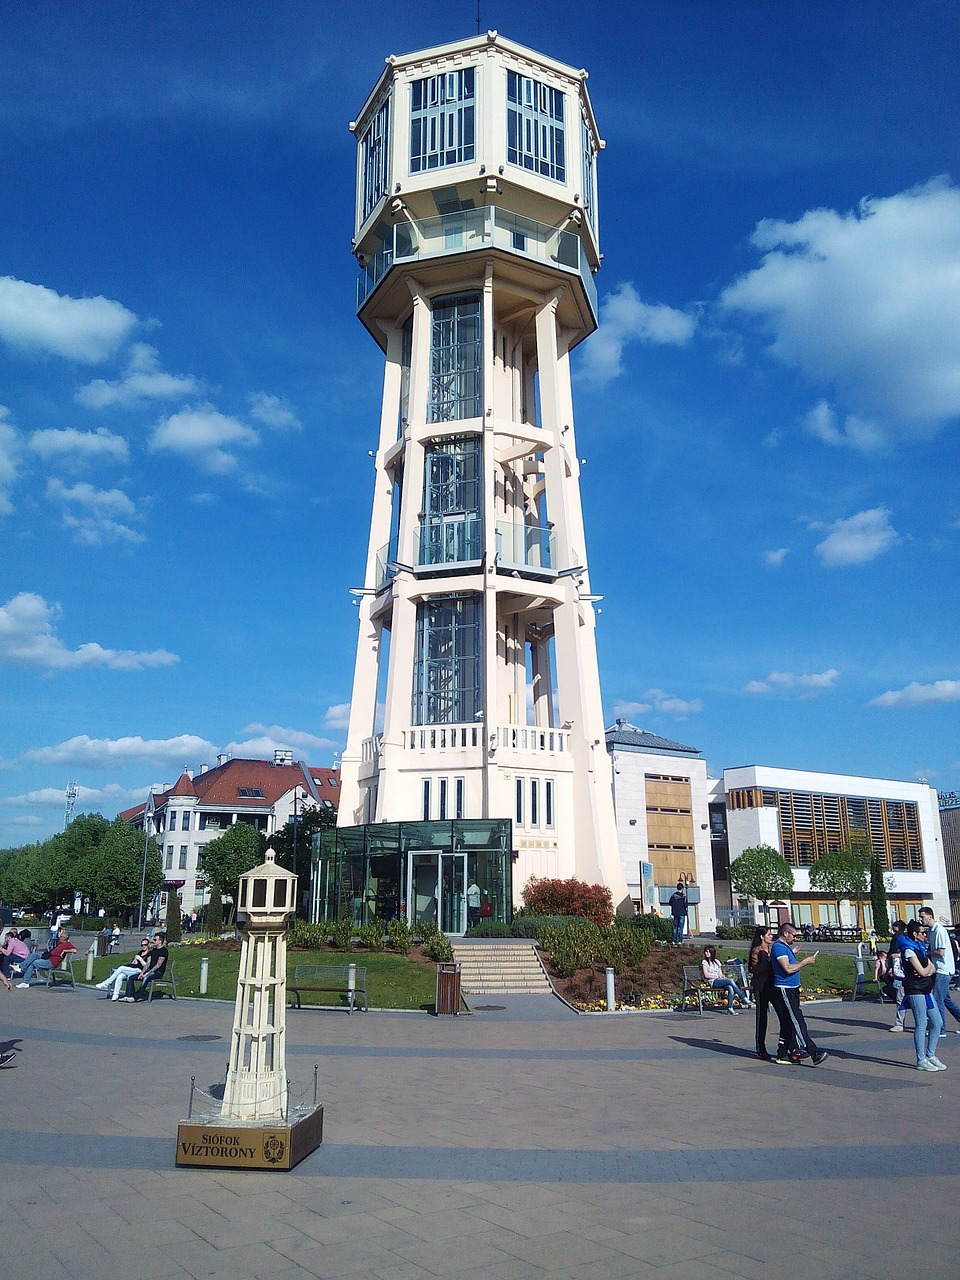 water tower main square in siofok summer free photo